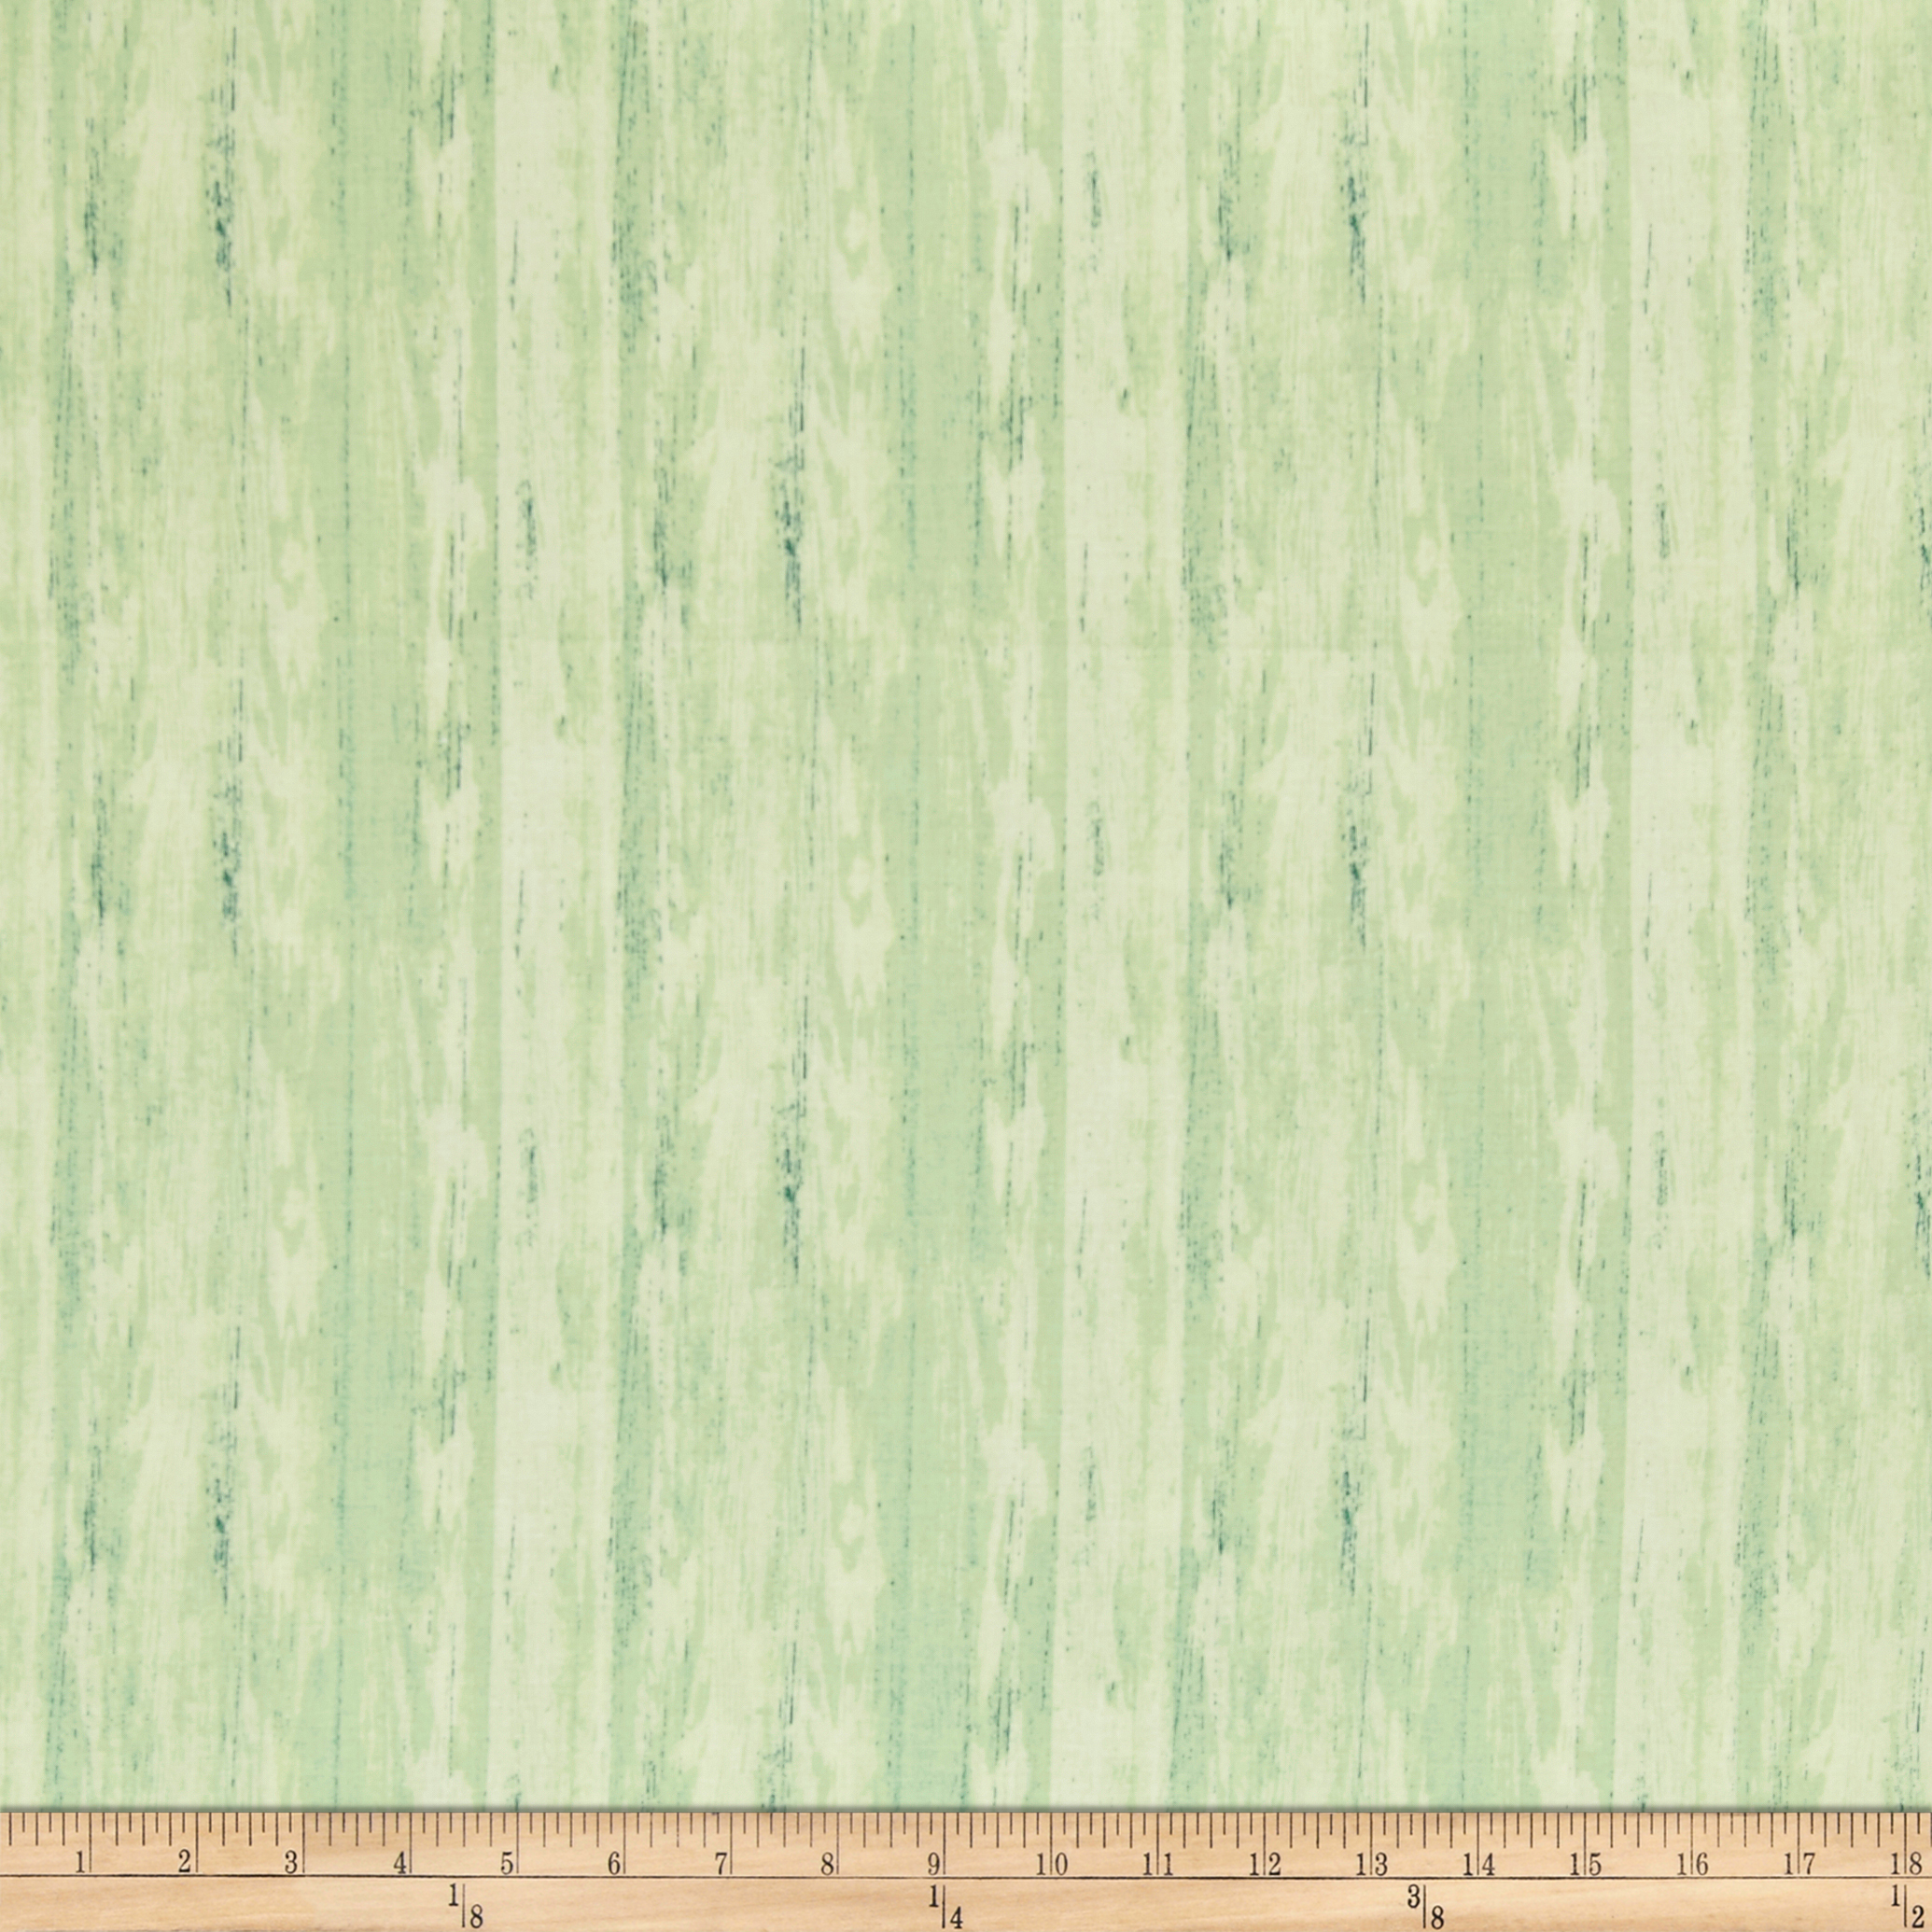 Pink Lady Wood Grain Light Green Fabric by P & B in USA